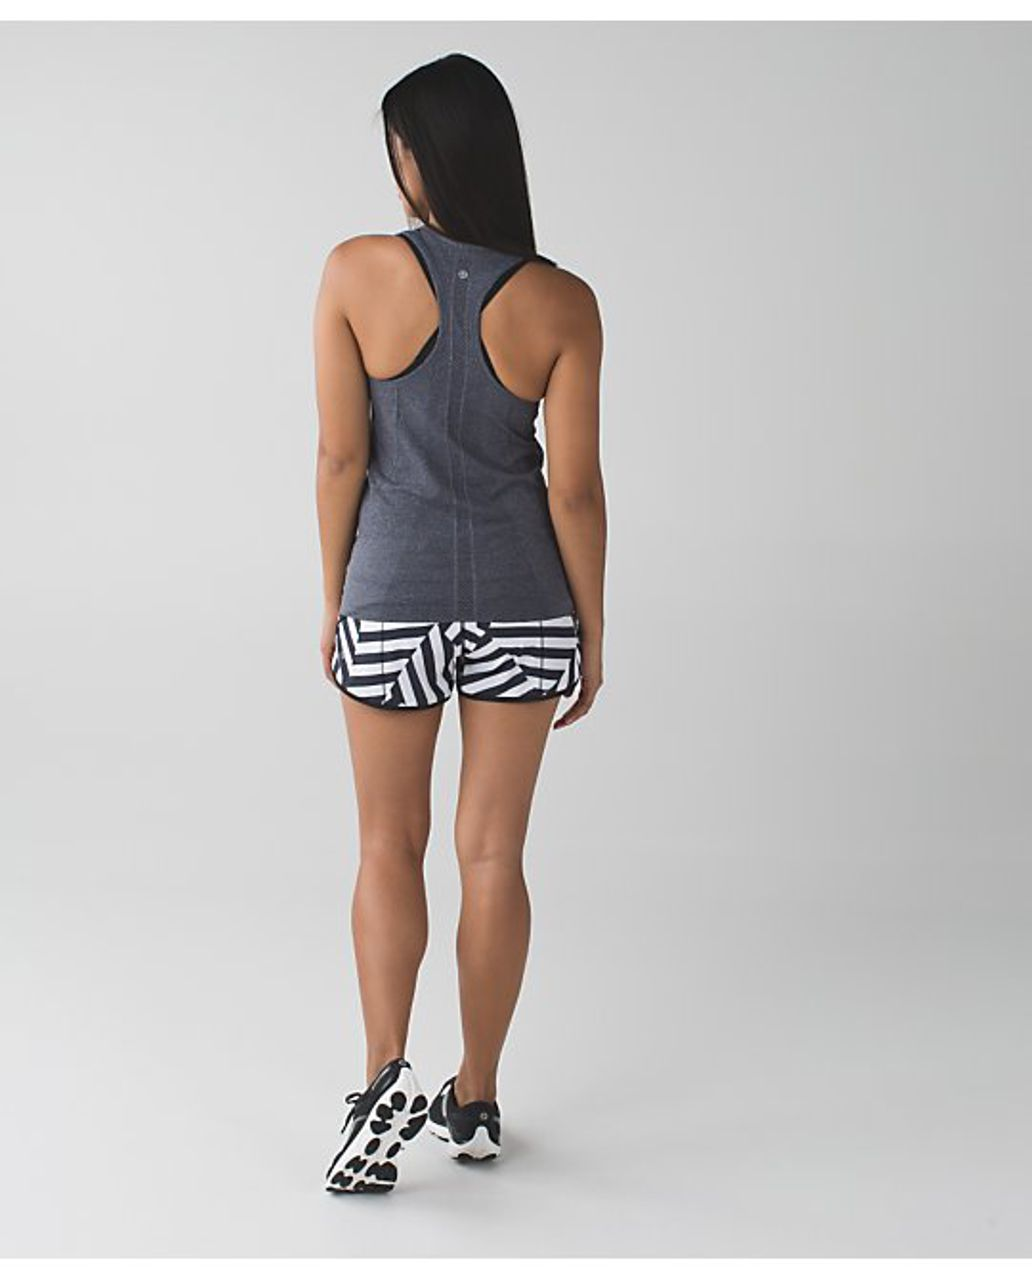 Lululemon Speed Short - Which Way Sway - Black/White (Solid Black Waistband/Black Accent - AU release)